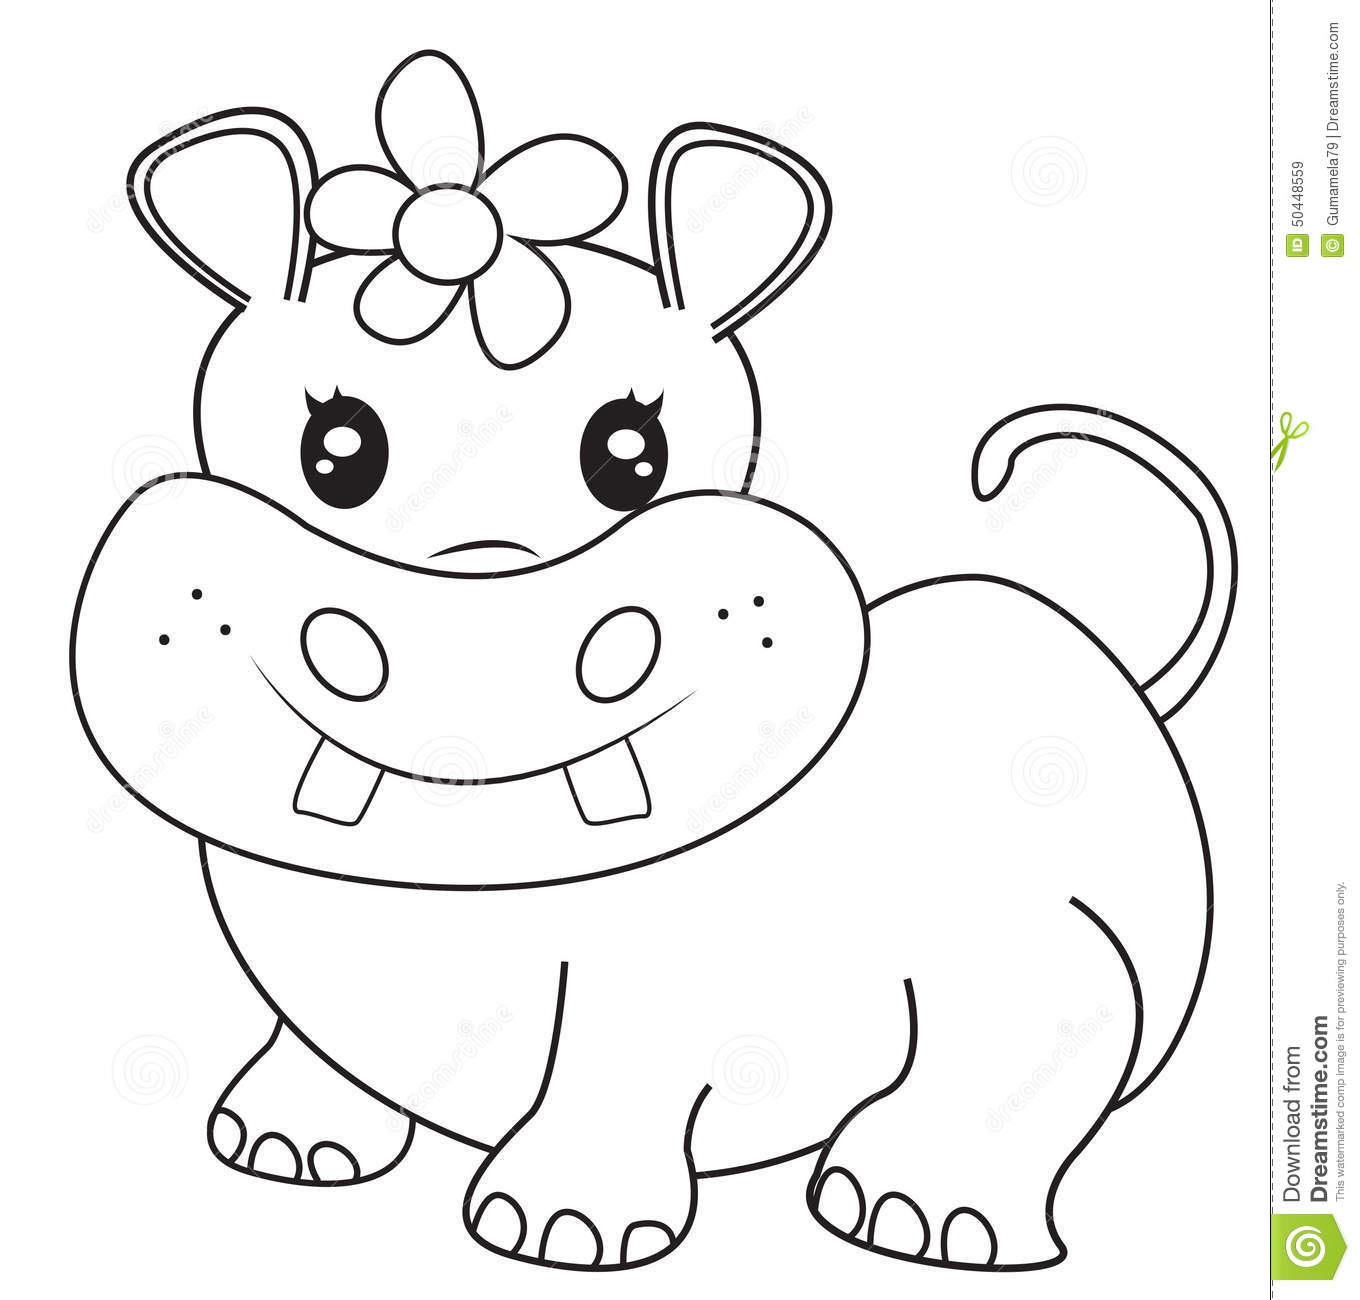 Female hippopotamus coloring page useful as coloring book for kids